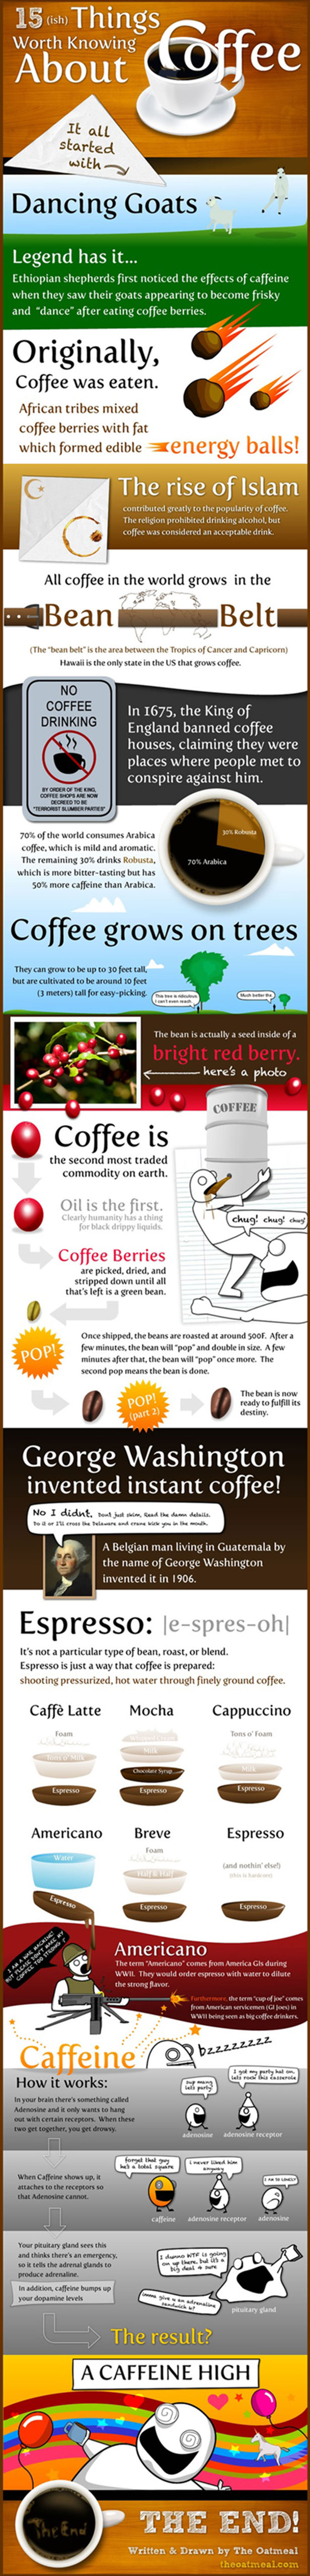 15 Things Worth Knowing about Coffee Infographic